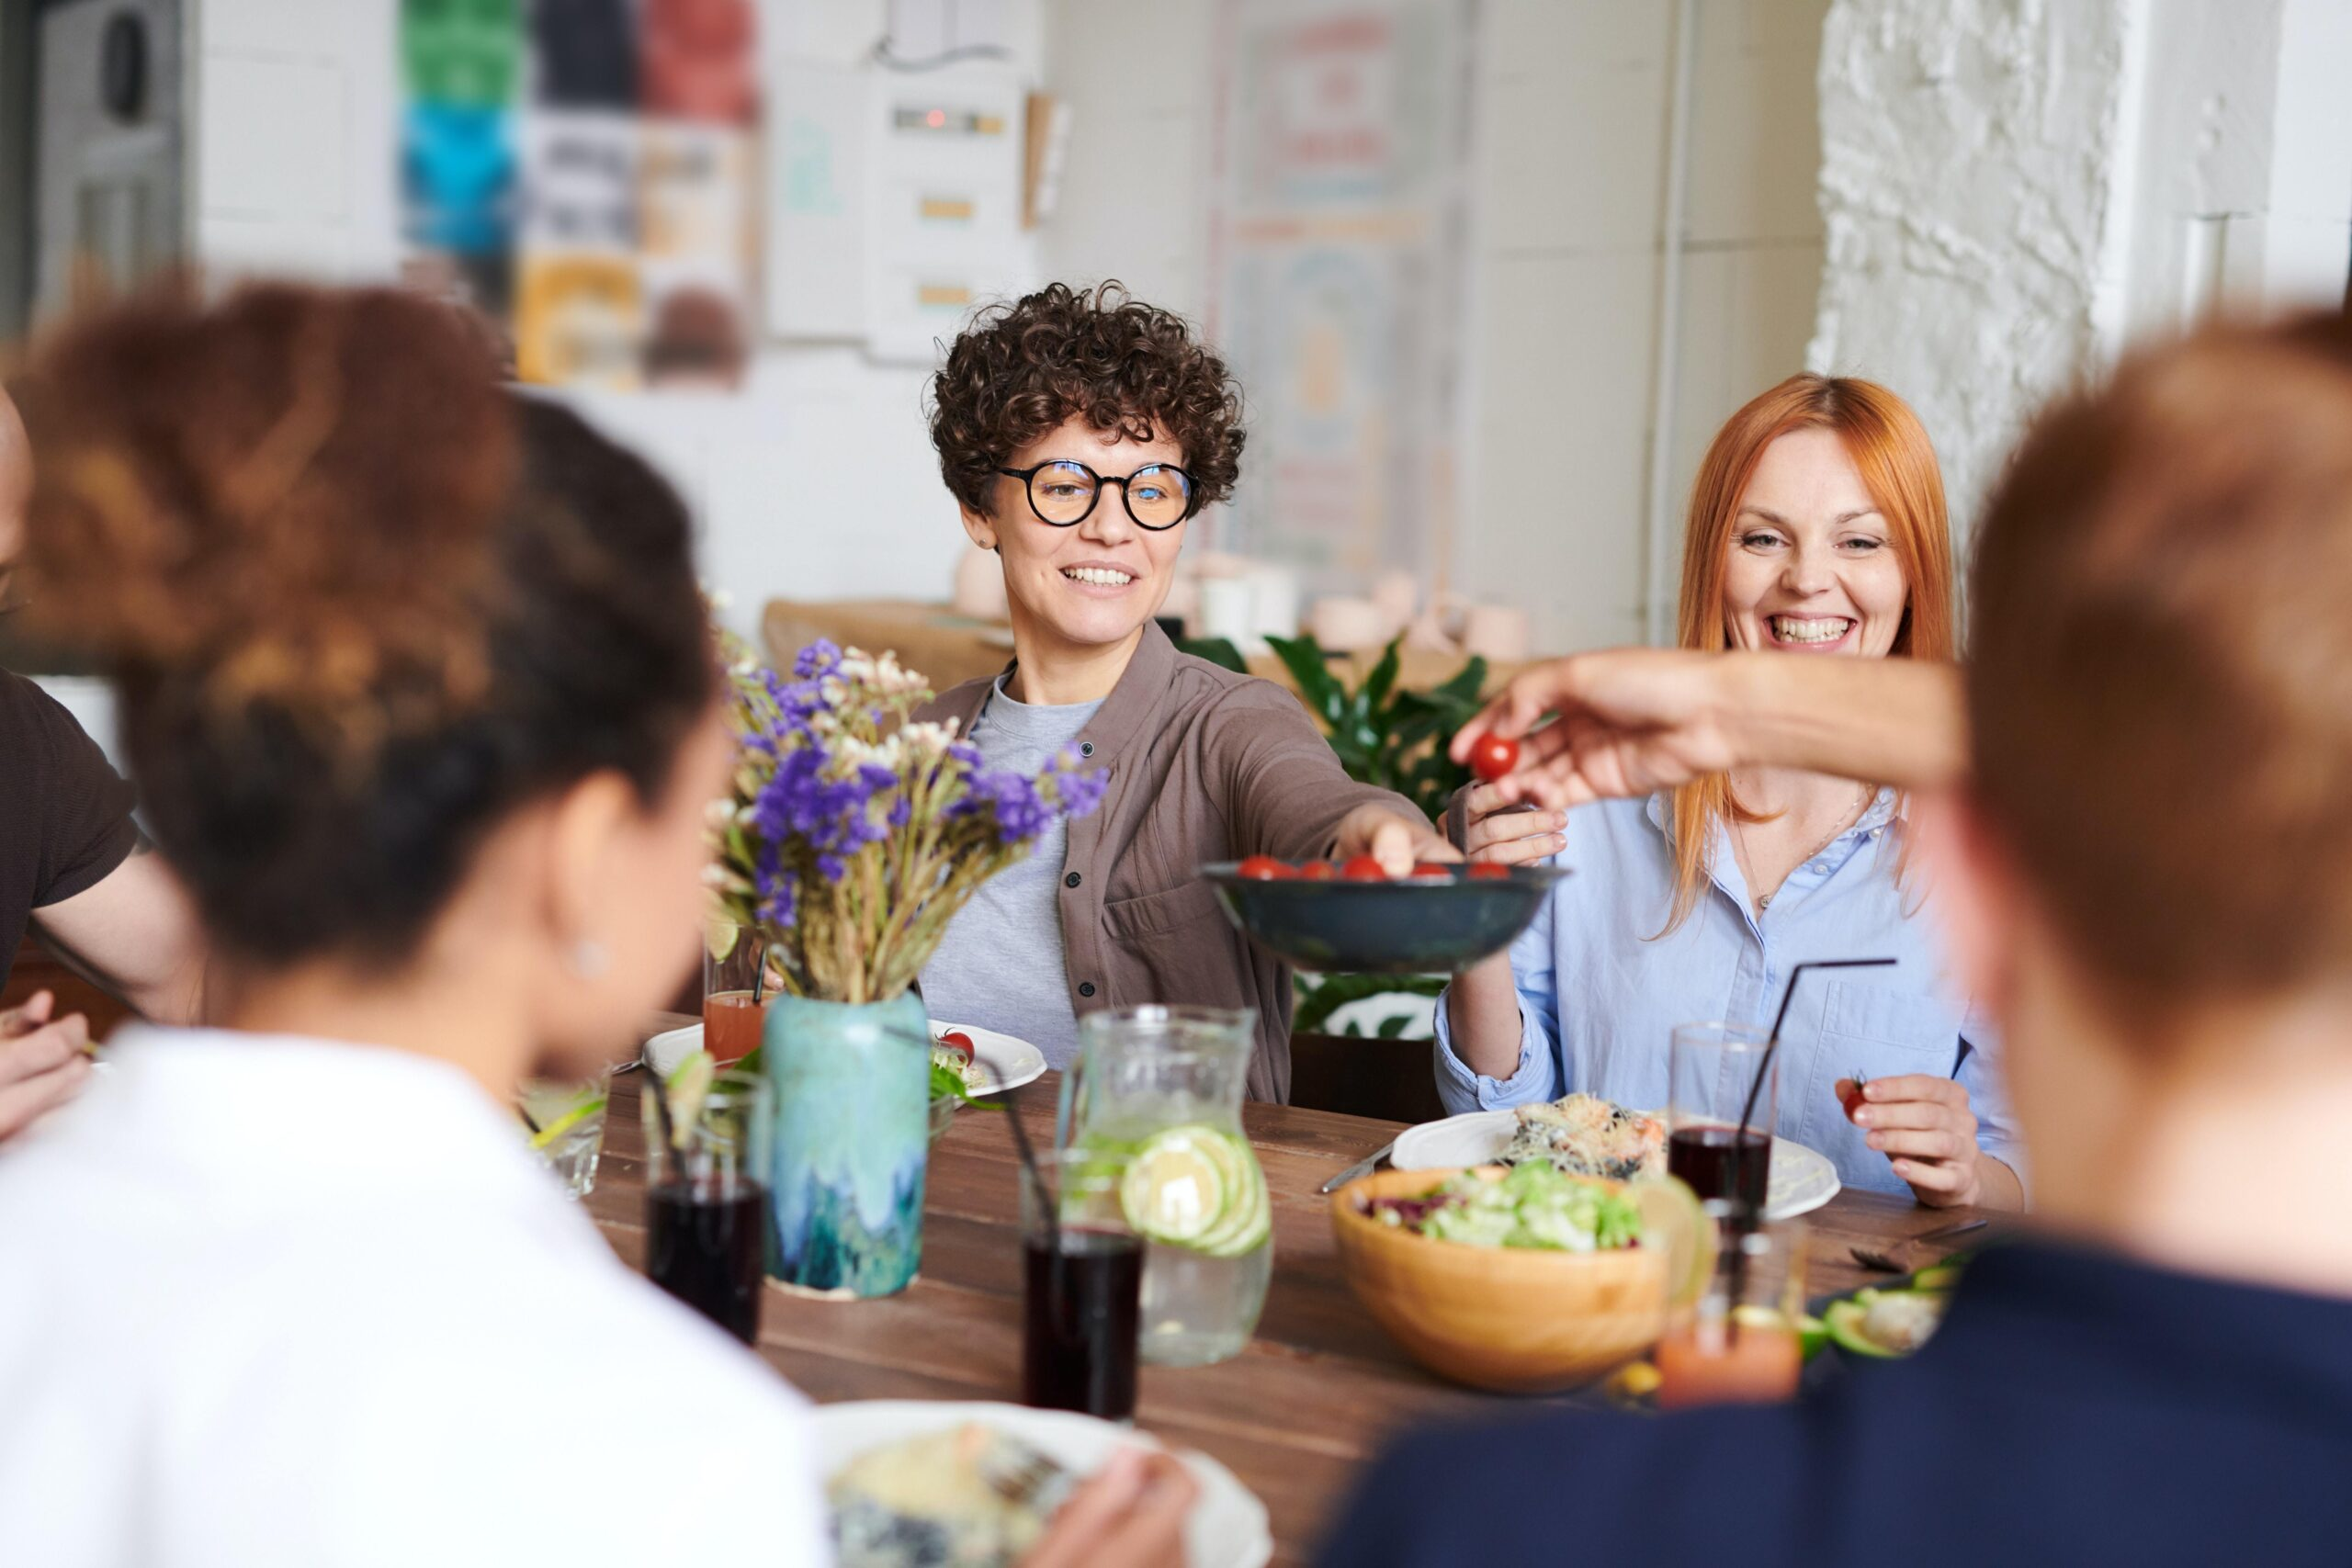 Sharing Tips to Help You Live Healthier and Longer